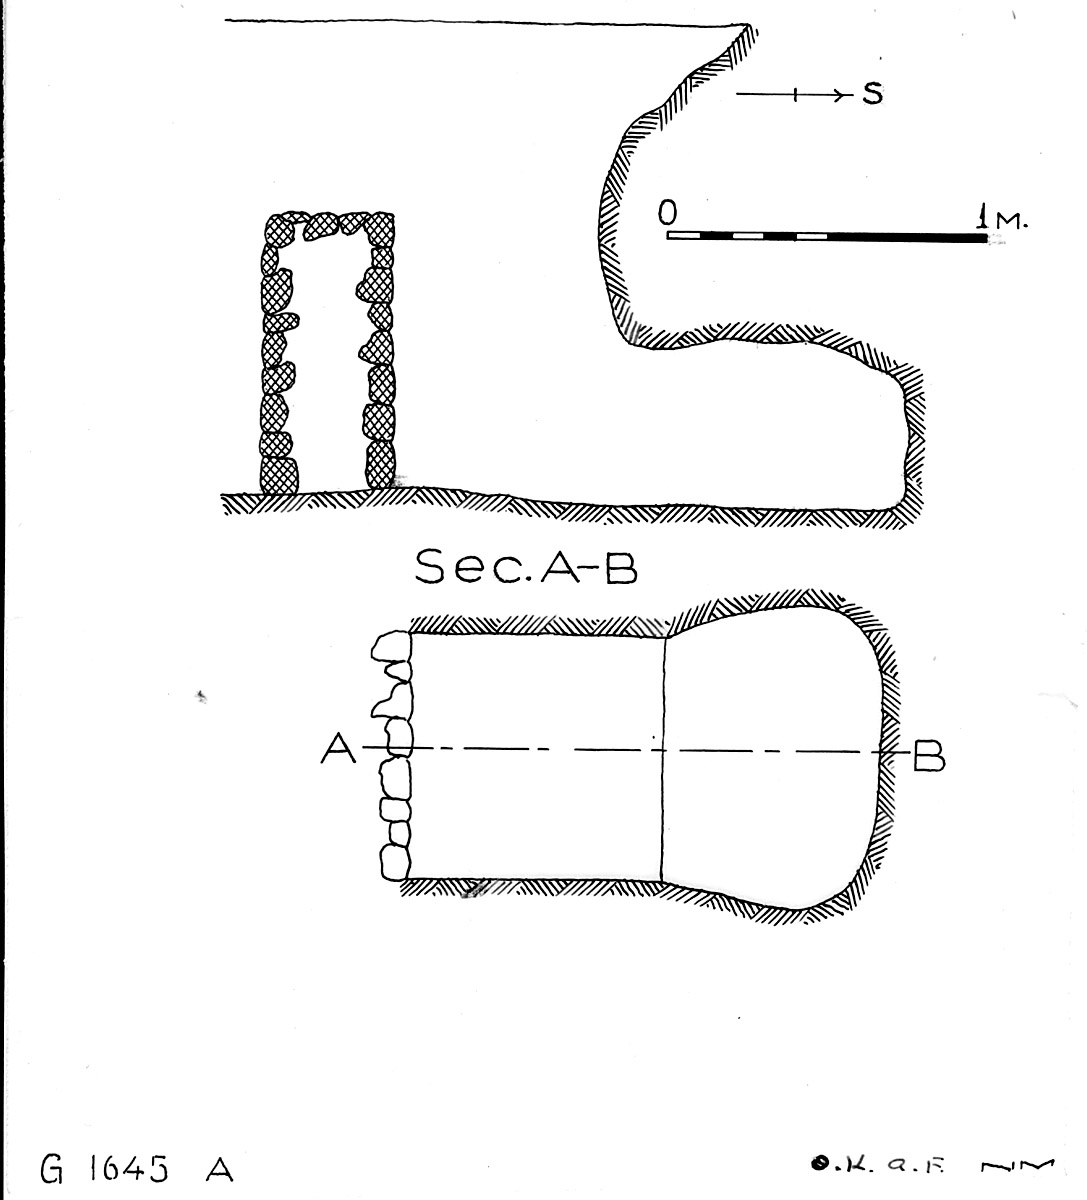 Maps and plans: G 1645, Shaft A